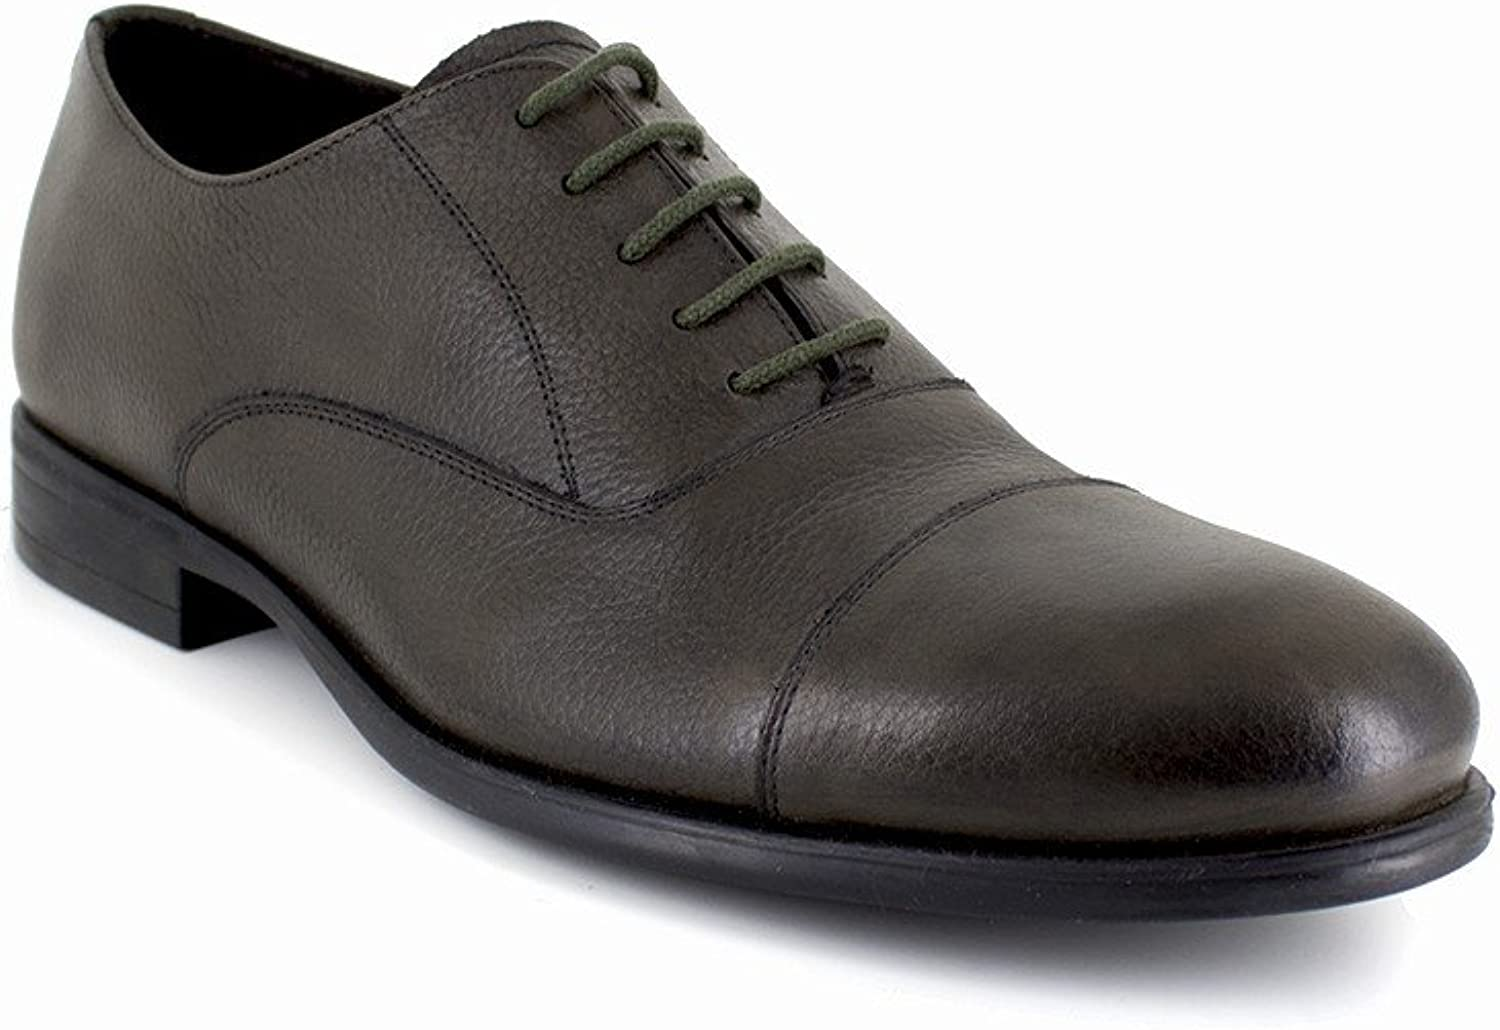 280e9e91447 JB-FARLOW Leather Green Richelieu J.Bradford wizu4e429249-New Shoes ...